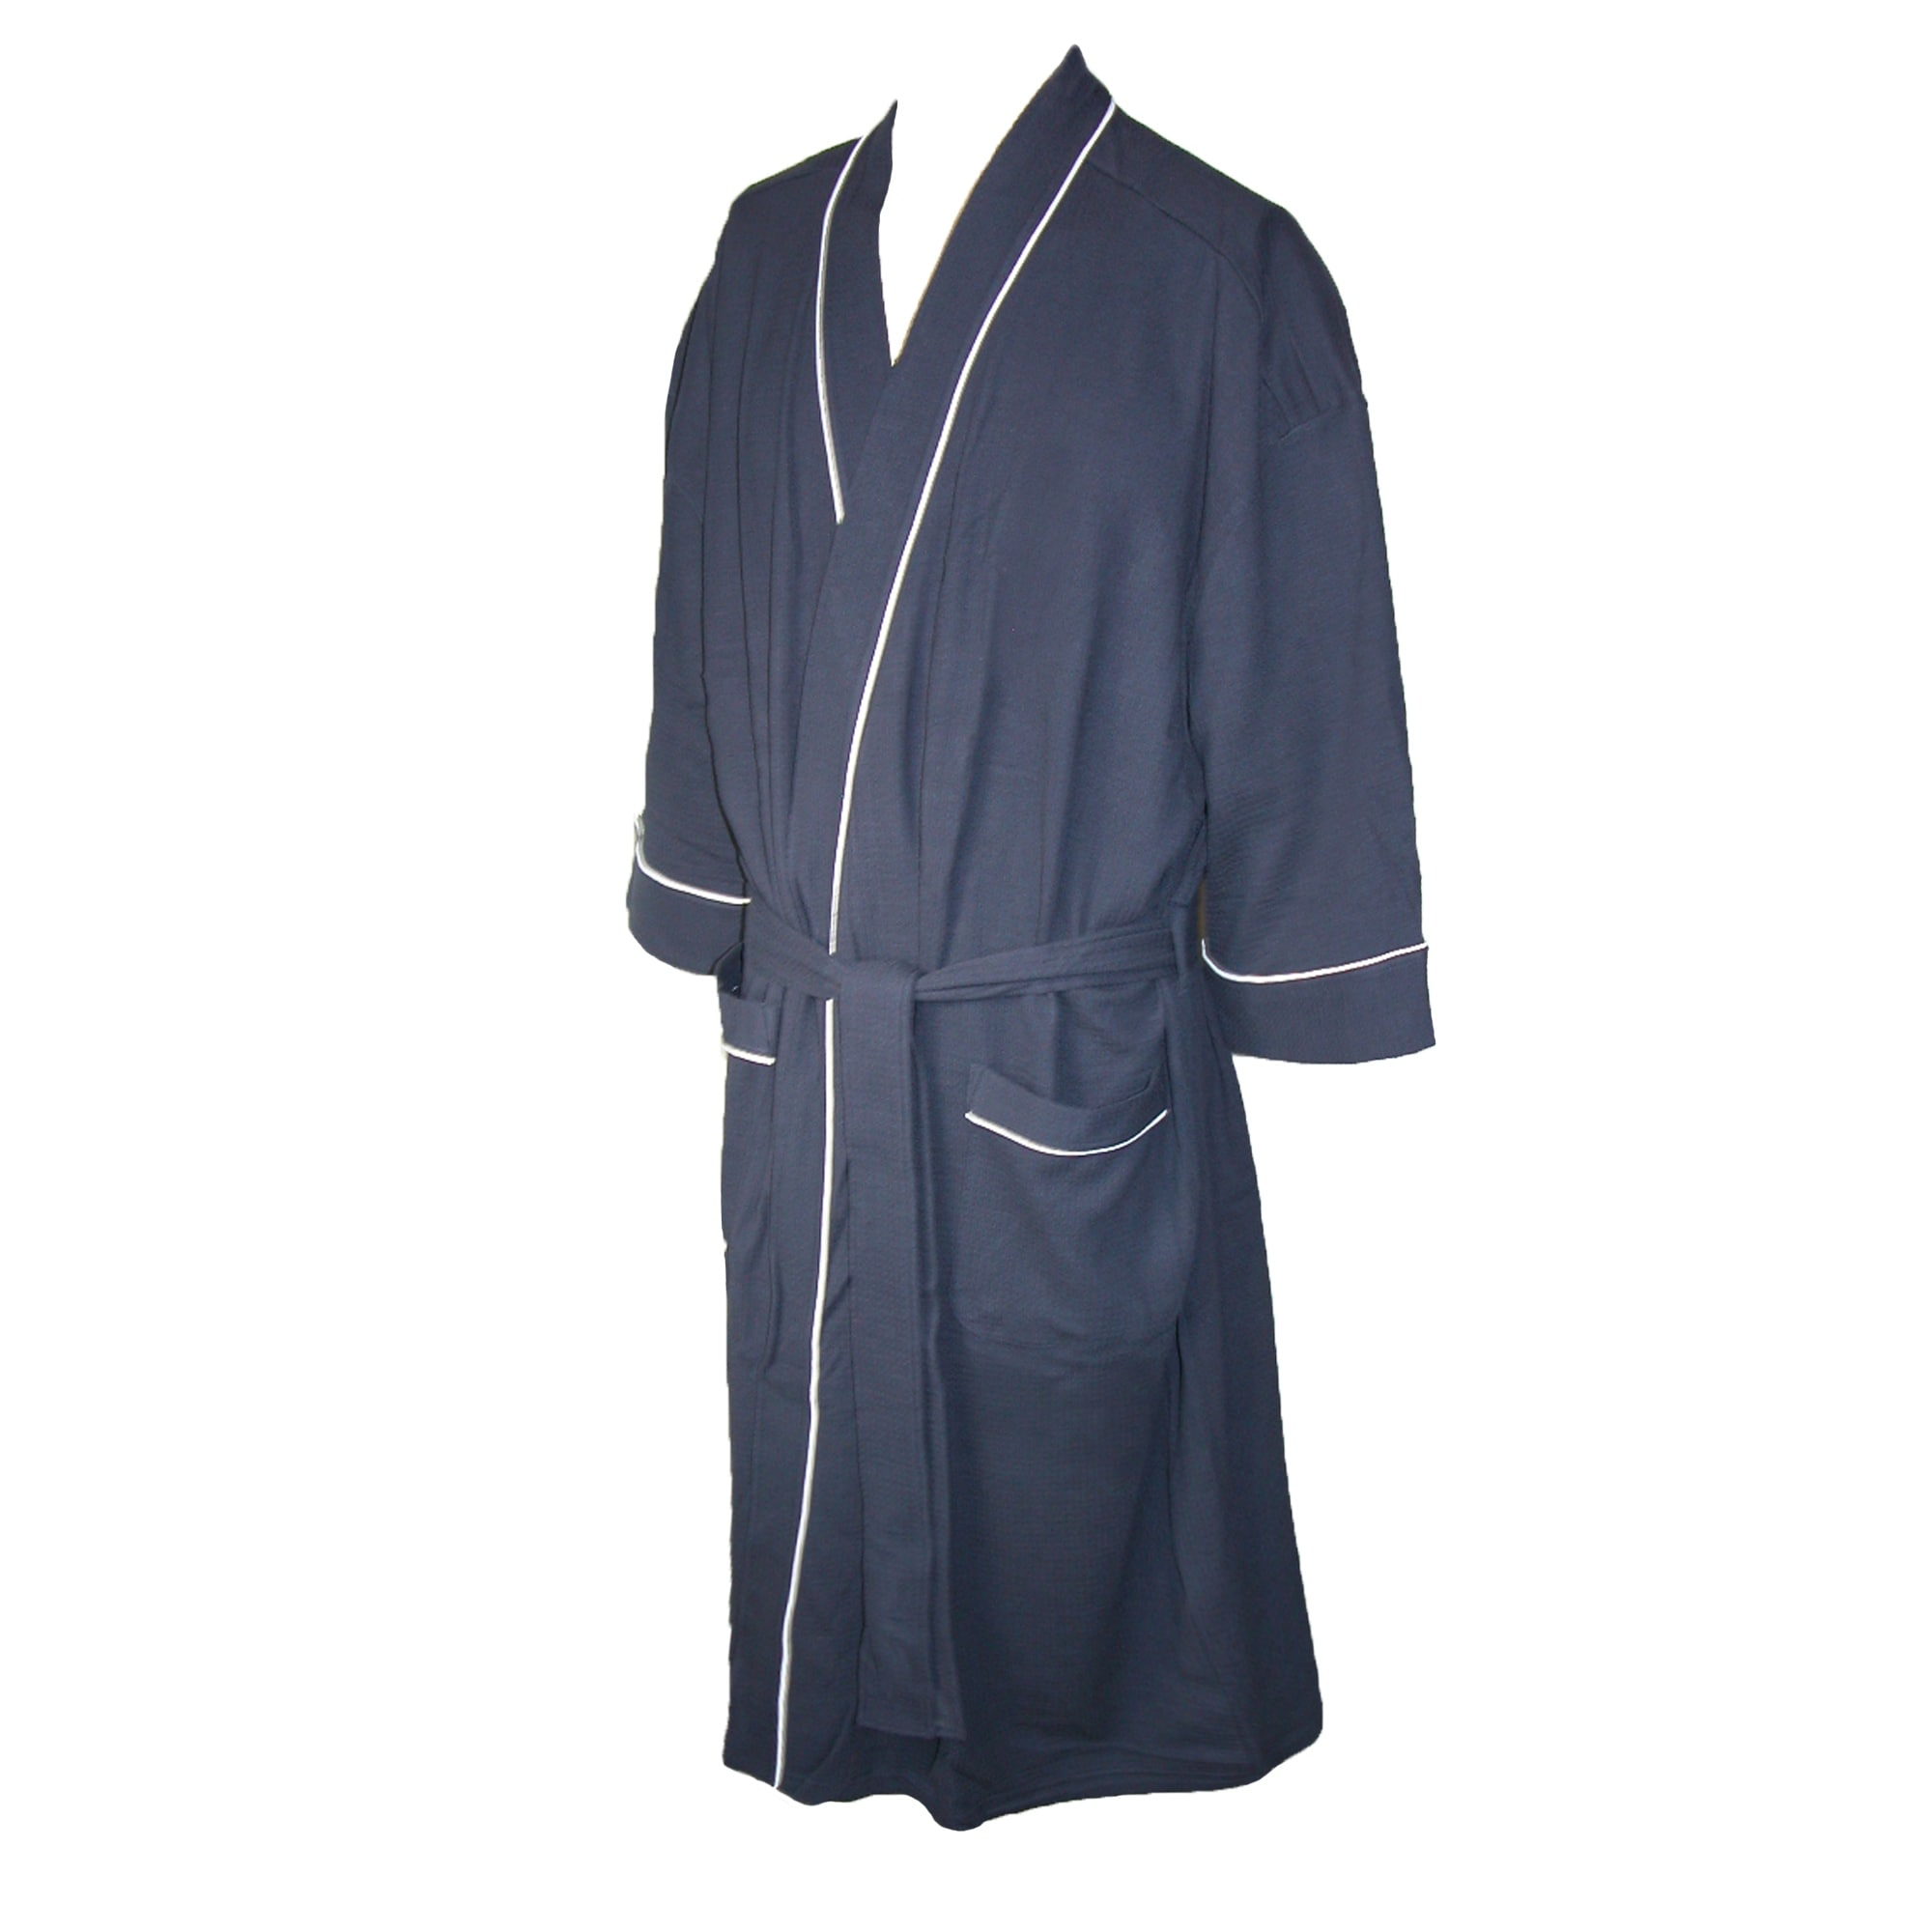 Shop Majestic International Men s Waffle Knit Kimono Robe - Free Shipping  Today - Overstock - 14281480 43b7311f4